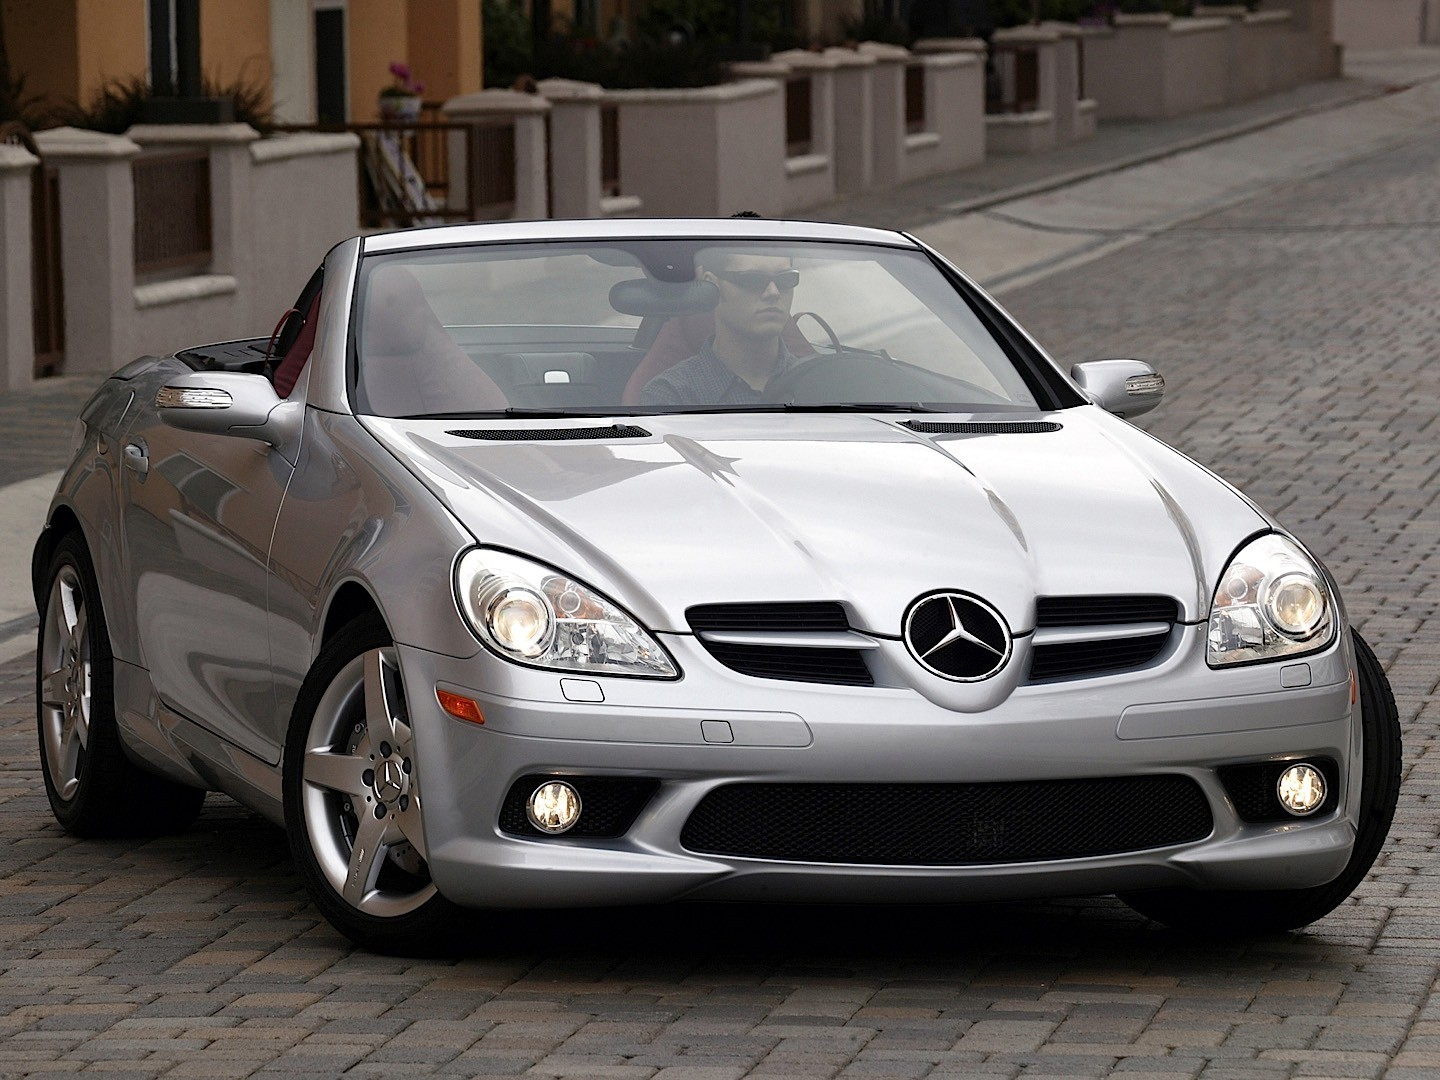 mercedes benz slk r171 specs photos 2008 2009 2010 2011 autoevolution. Black Bedroom Furniture Sets. Home Design Ideas